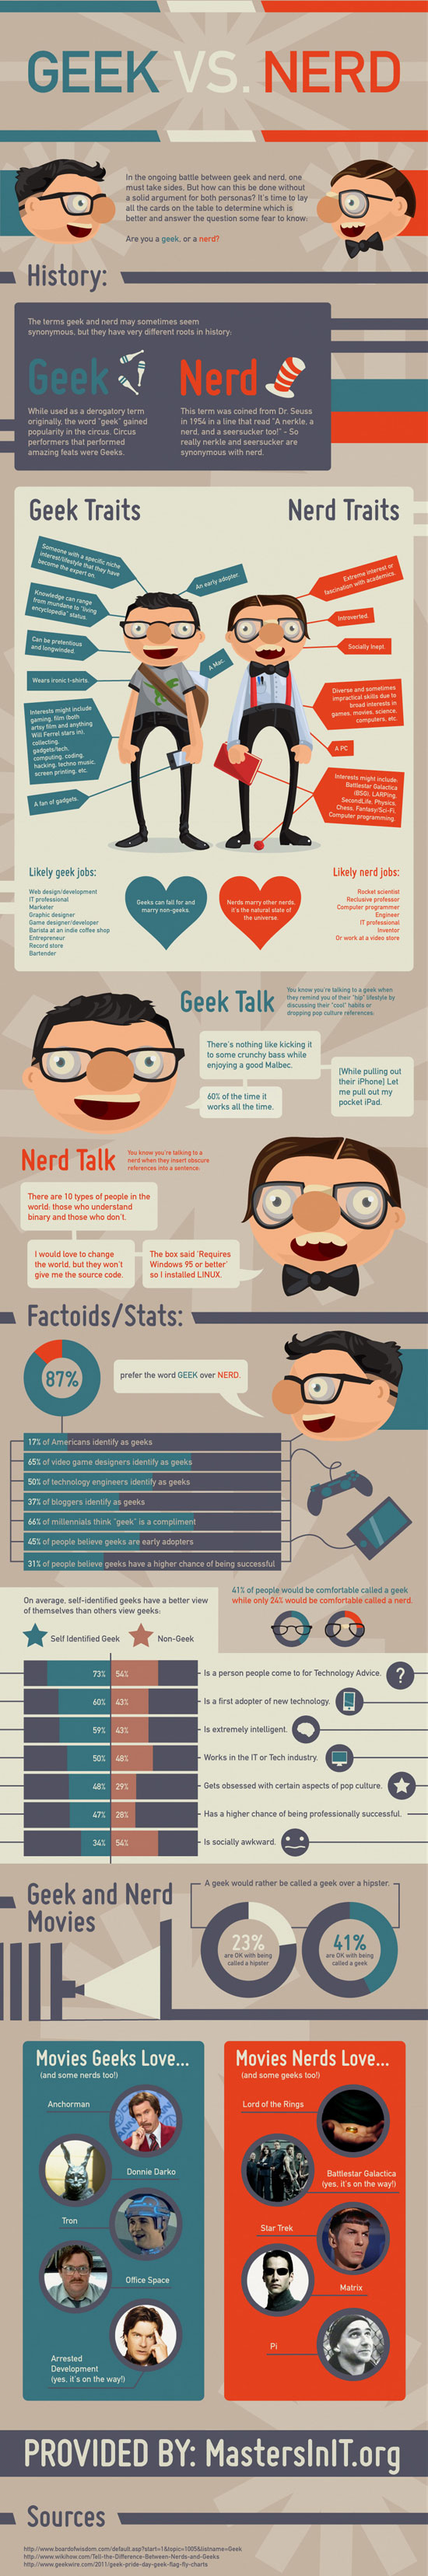 Are you a Geek or a Nerd? Geeks vs nerds, Nerd, Infographic